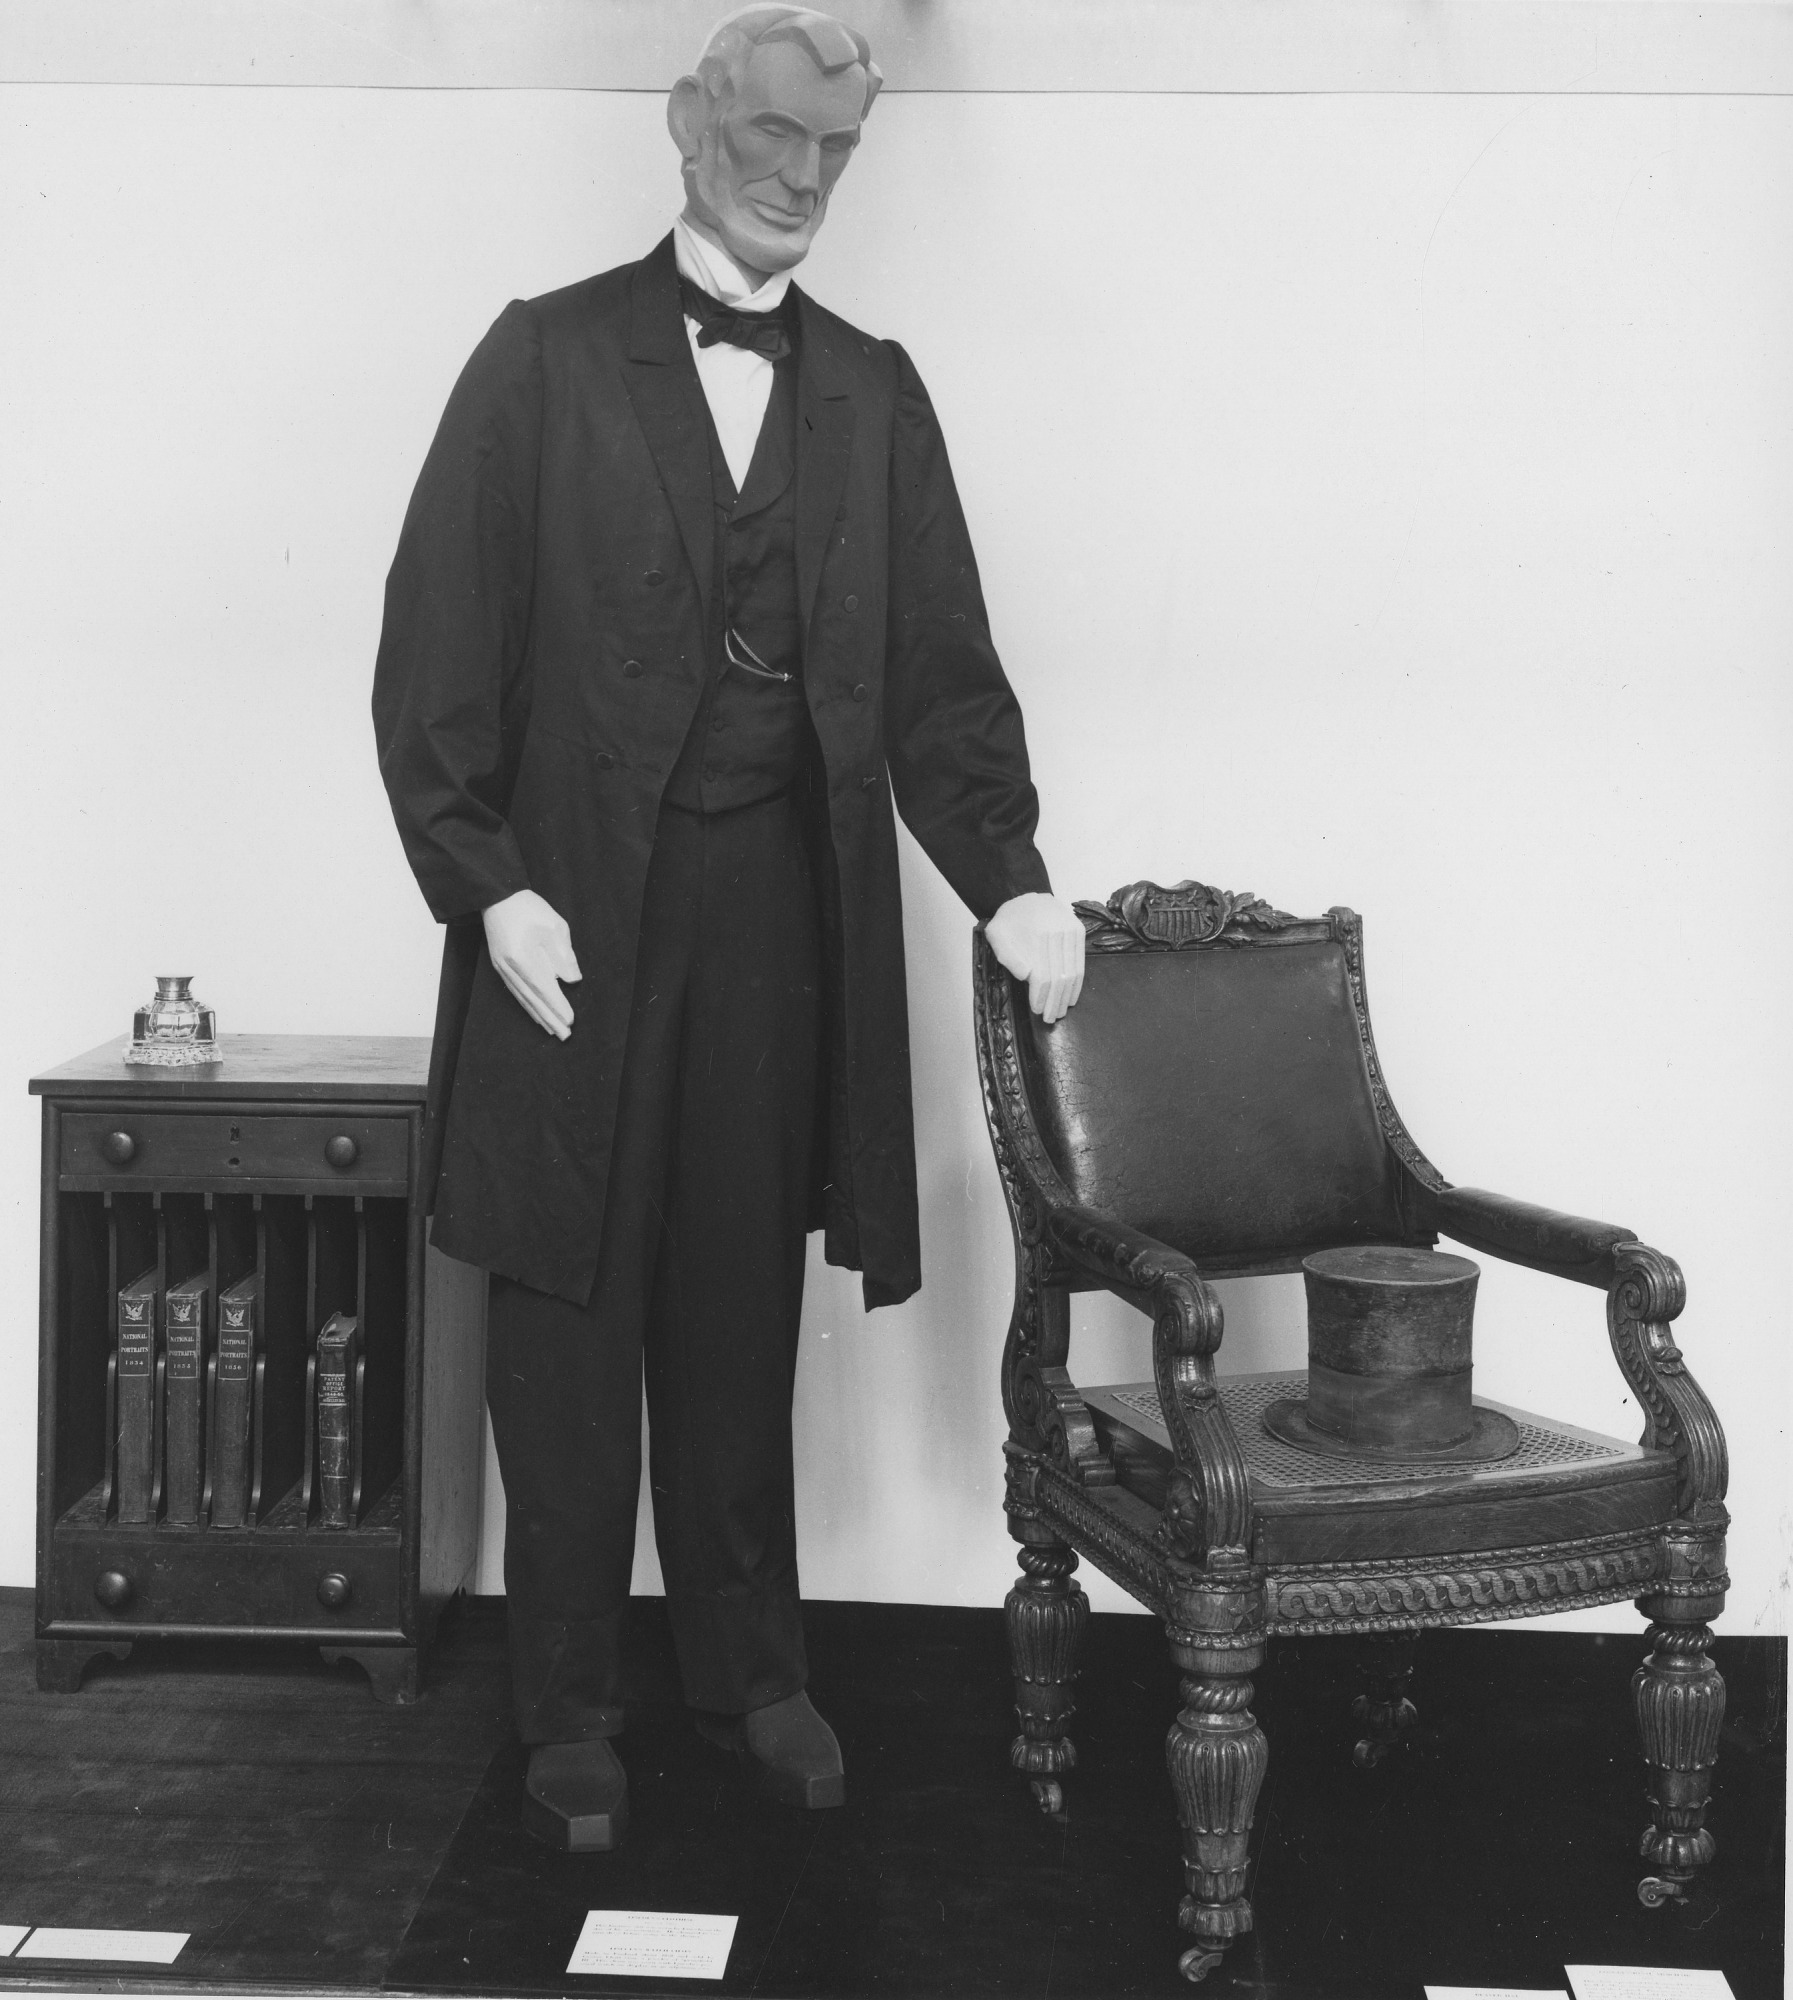 President Lincoln's Suit, by Unknown, 1959, Smithsonian Archives - History Div, SIA2009-0440.